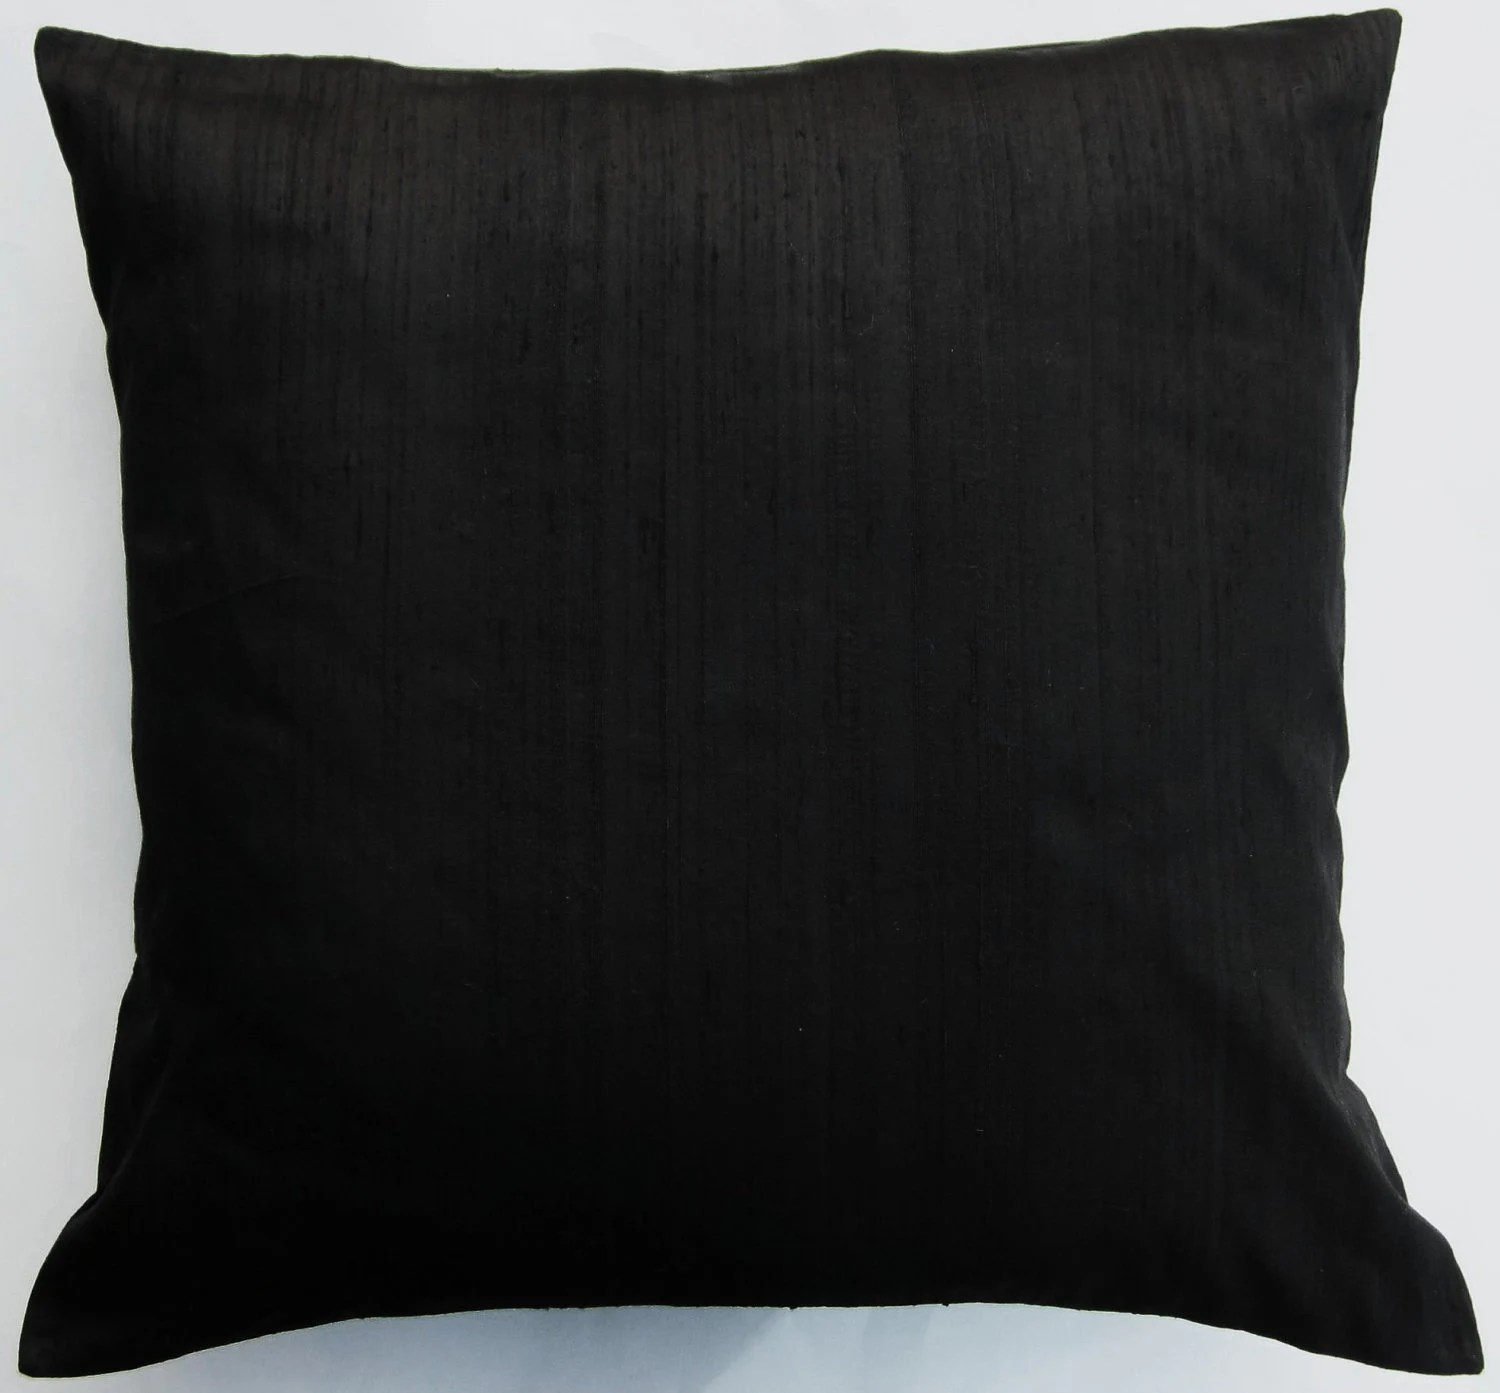 Black Pillow Cover Black Silk Throw Pillow Cover 18 x 18